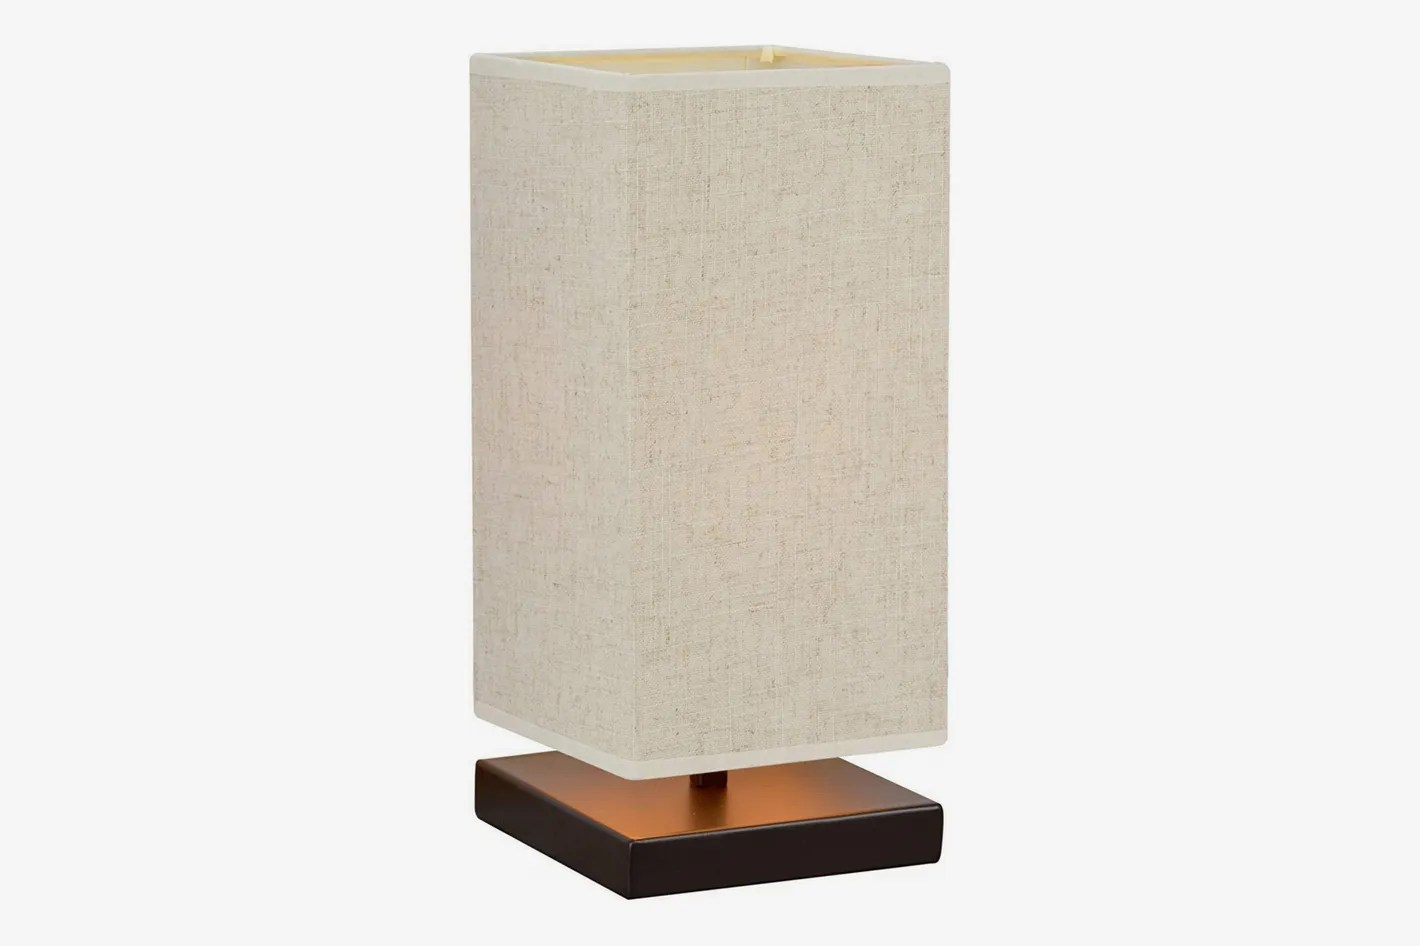 Cool Bedside Lamps Kira Home Lucerna 13 Touch Bedside Lamp